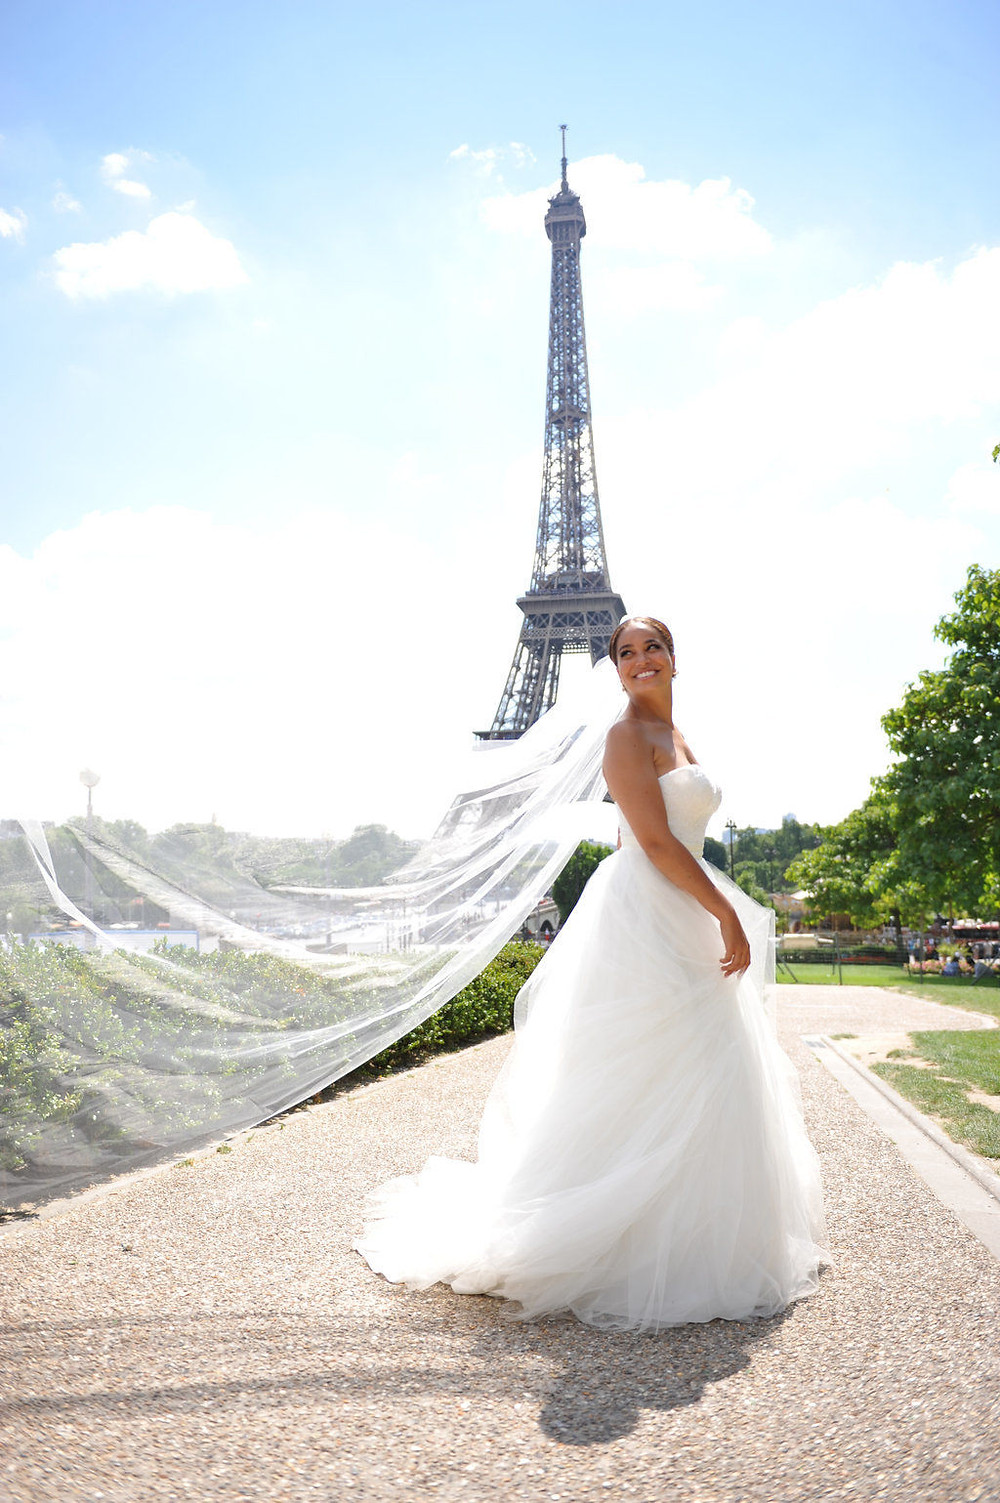 Can I get married at the eiffel tower